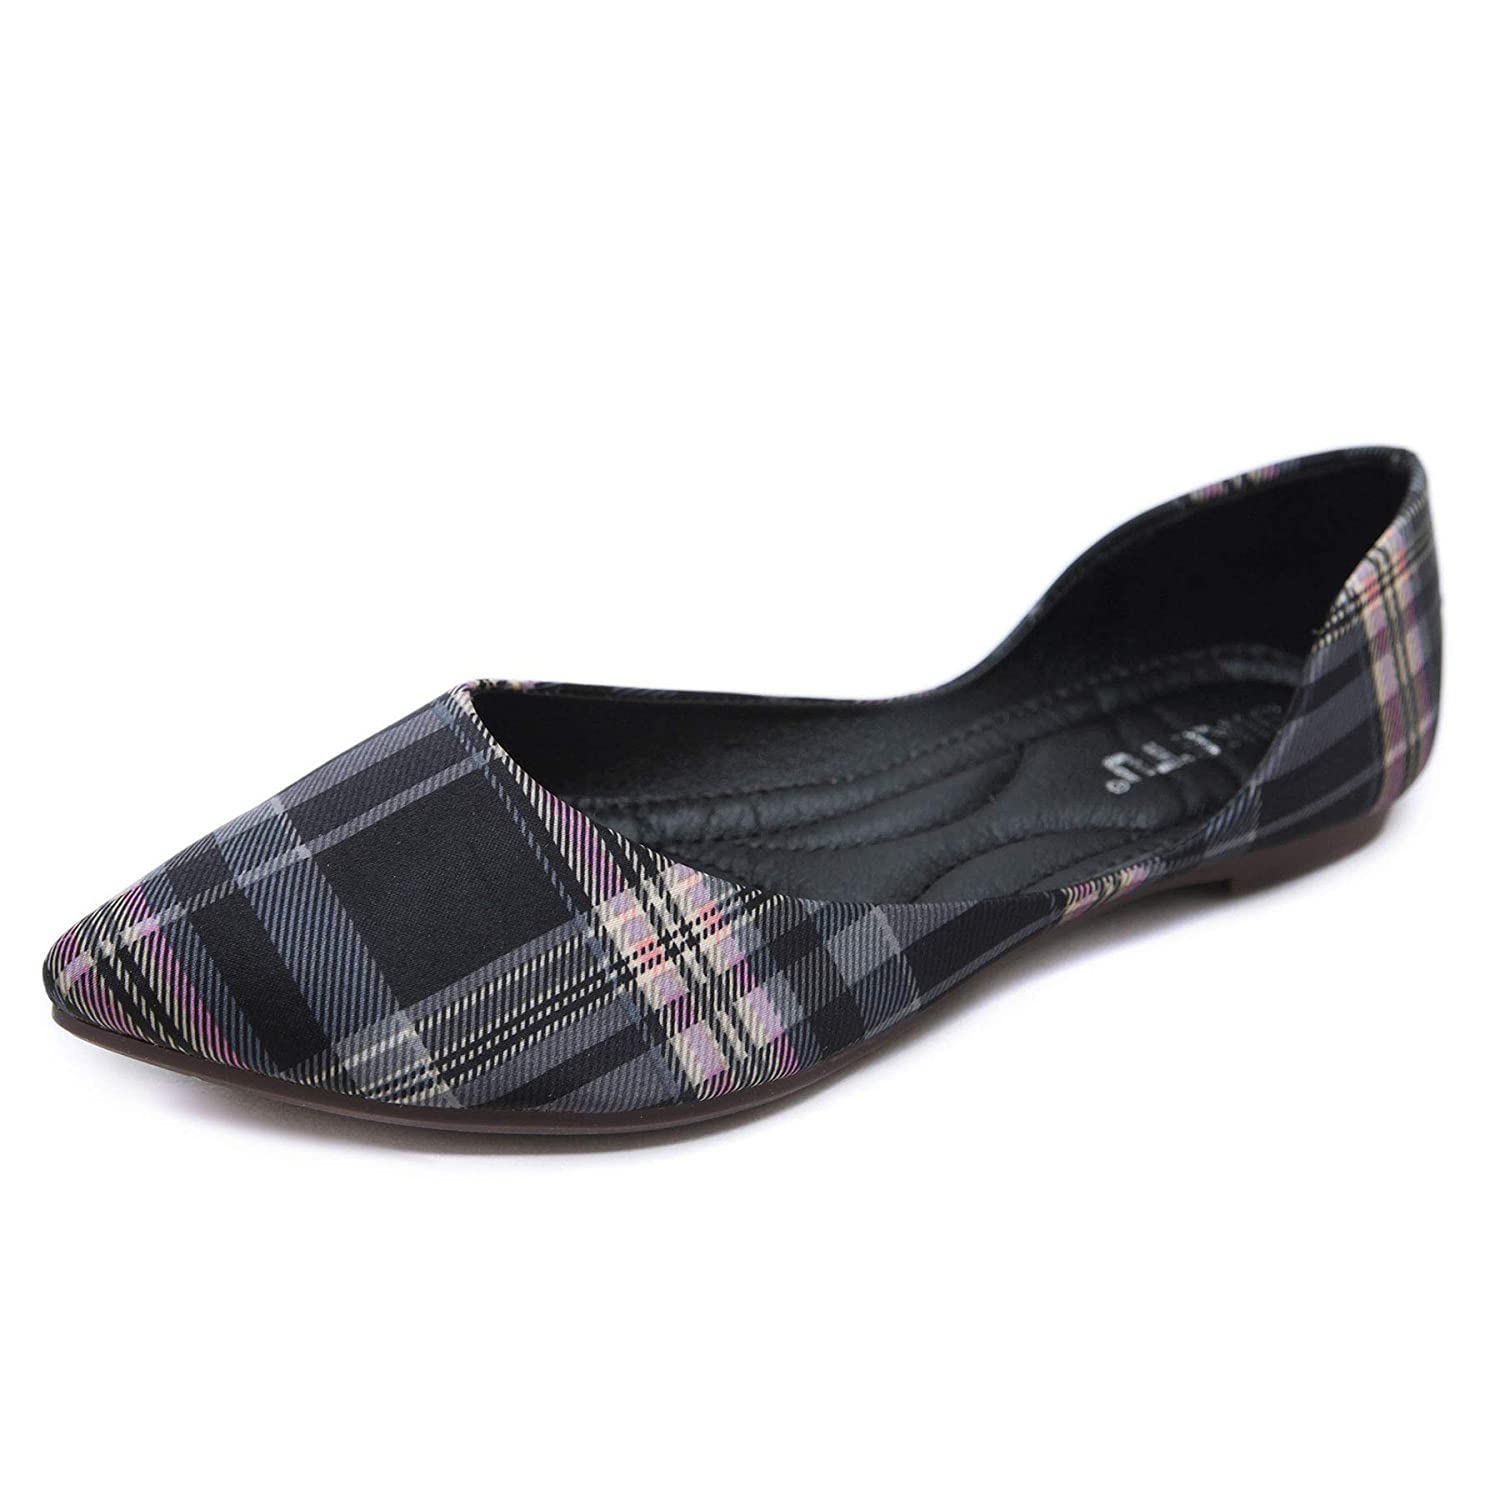 Orangetime Womens Classic Pointy Toe Shoes Ballet Flats Plaid Flat Shoes for Work Slip On Moccasins